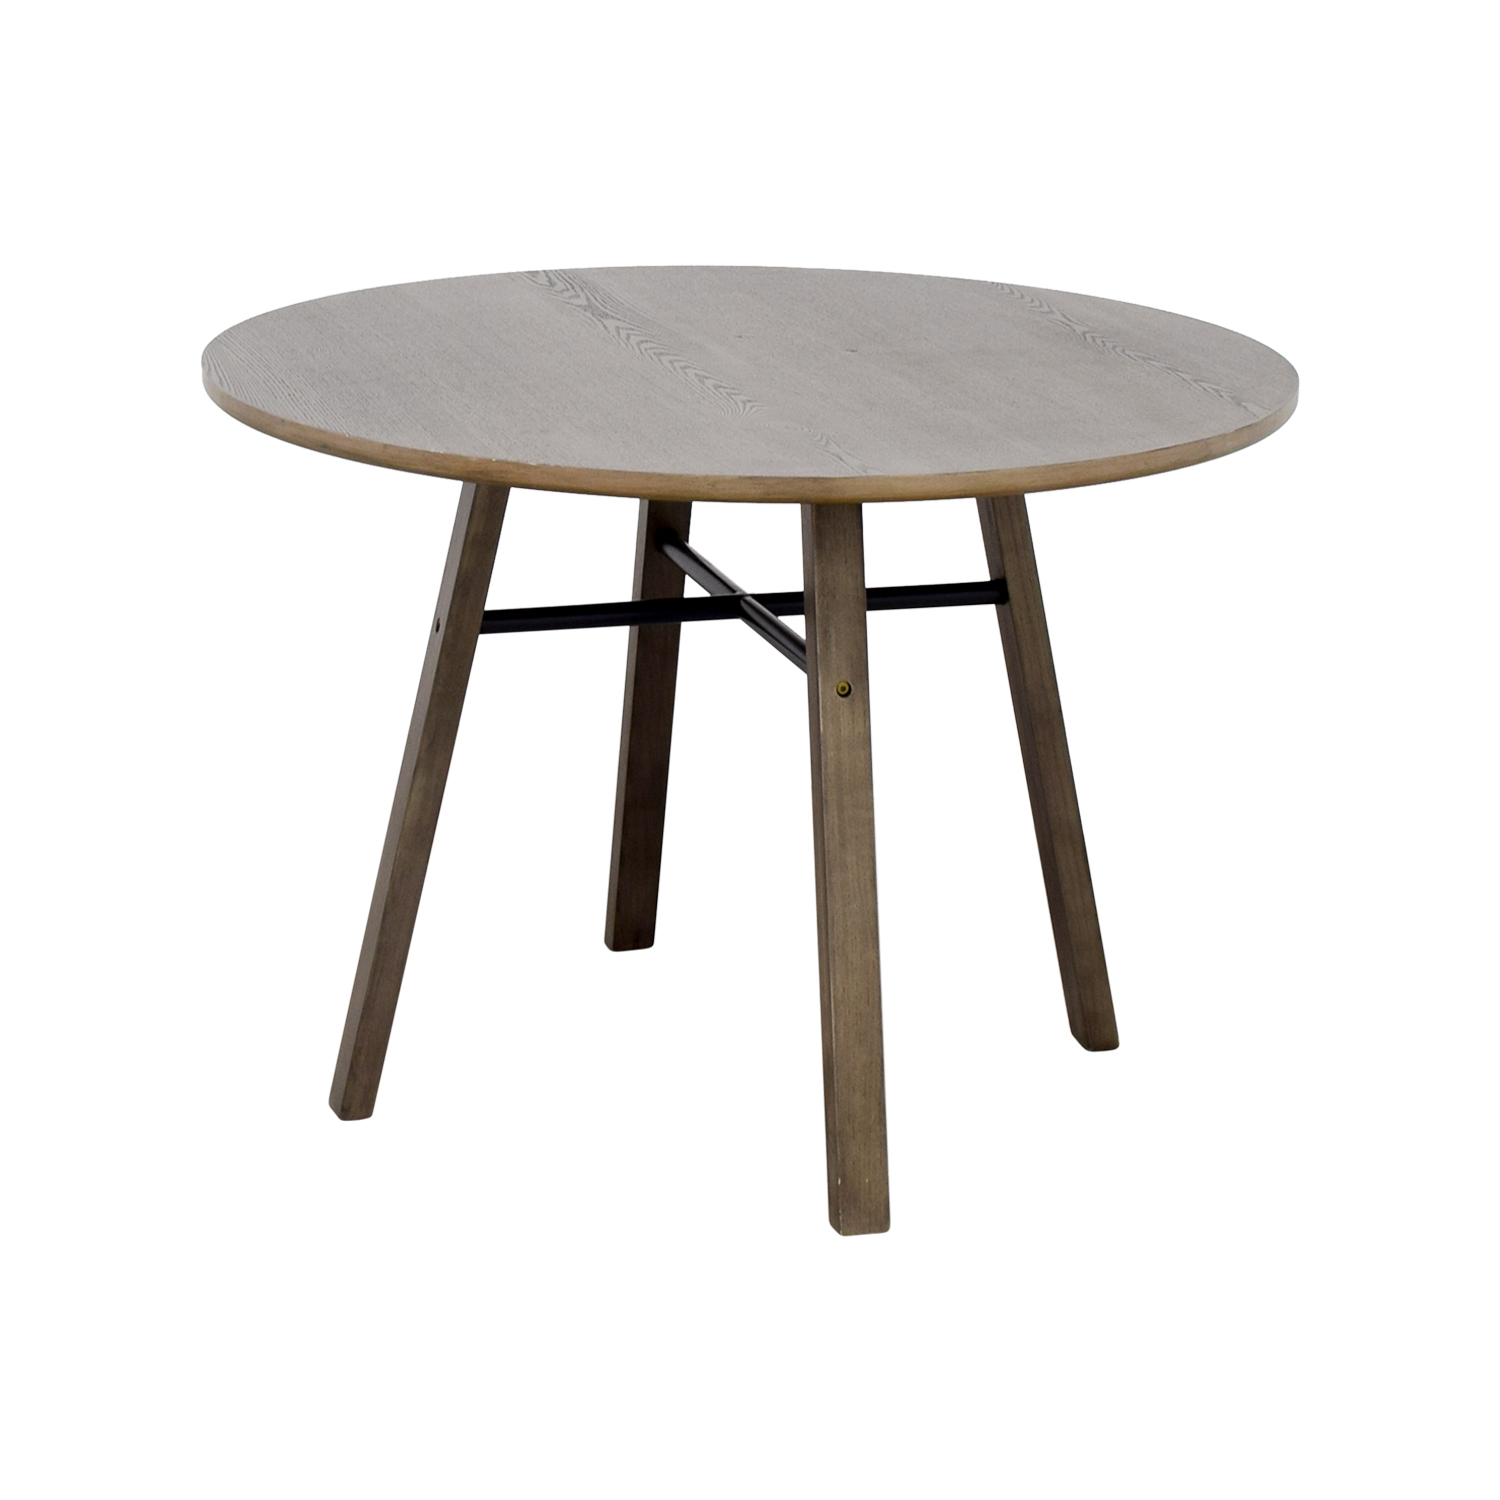 Crate And Barrel Big Sur Dining Table Gallery Dining  : used west elm rustic round dining table from sorahana.info size 1500 x 1500 jpeg 369kB